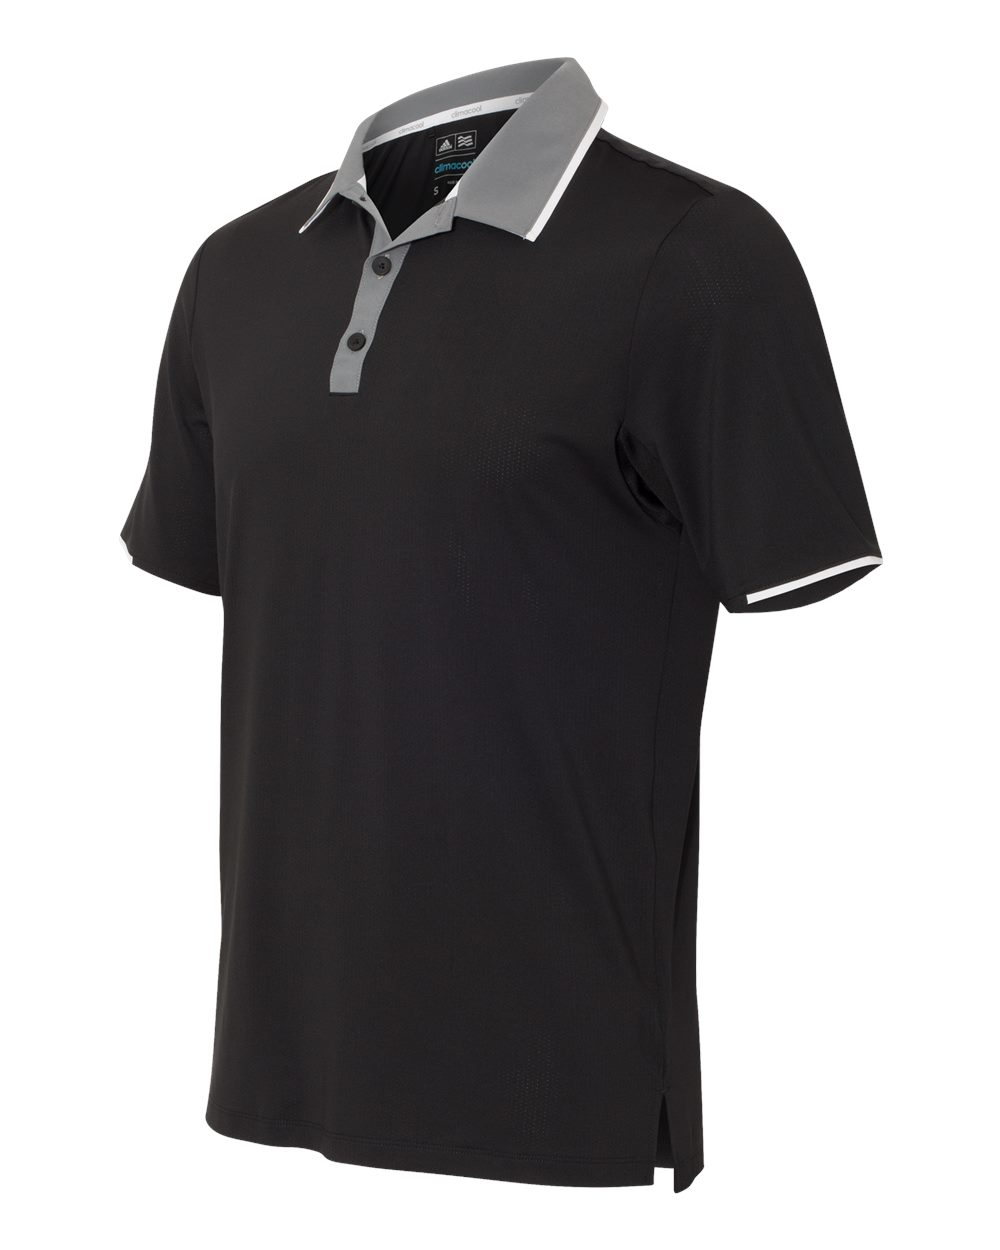 Adidas A166 - Climacool Performance Polo